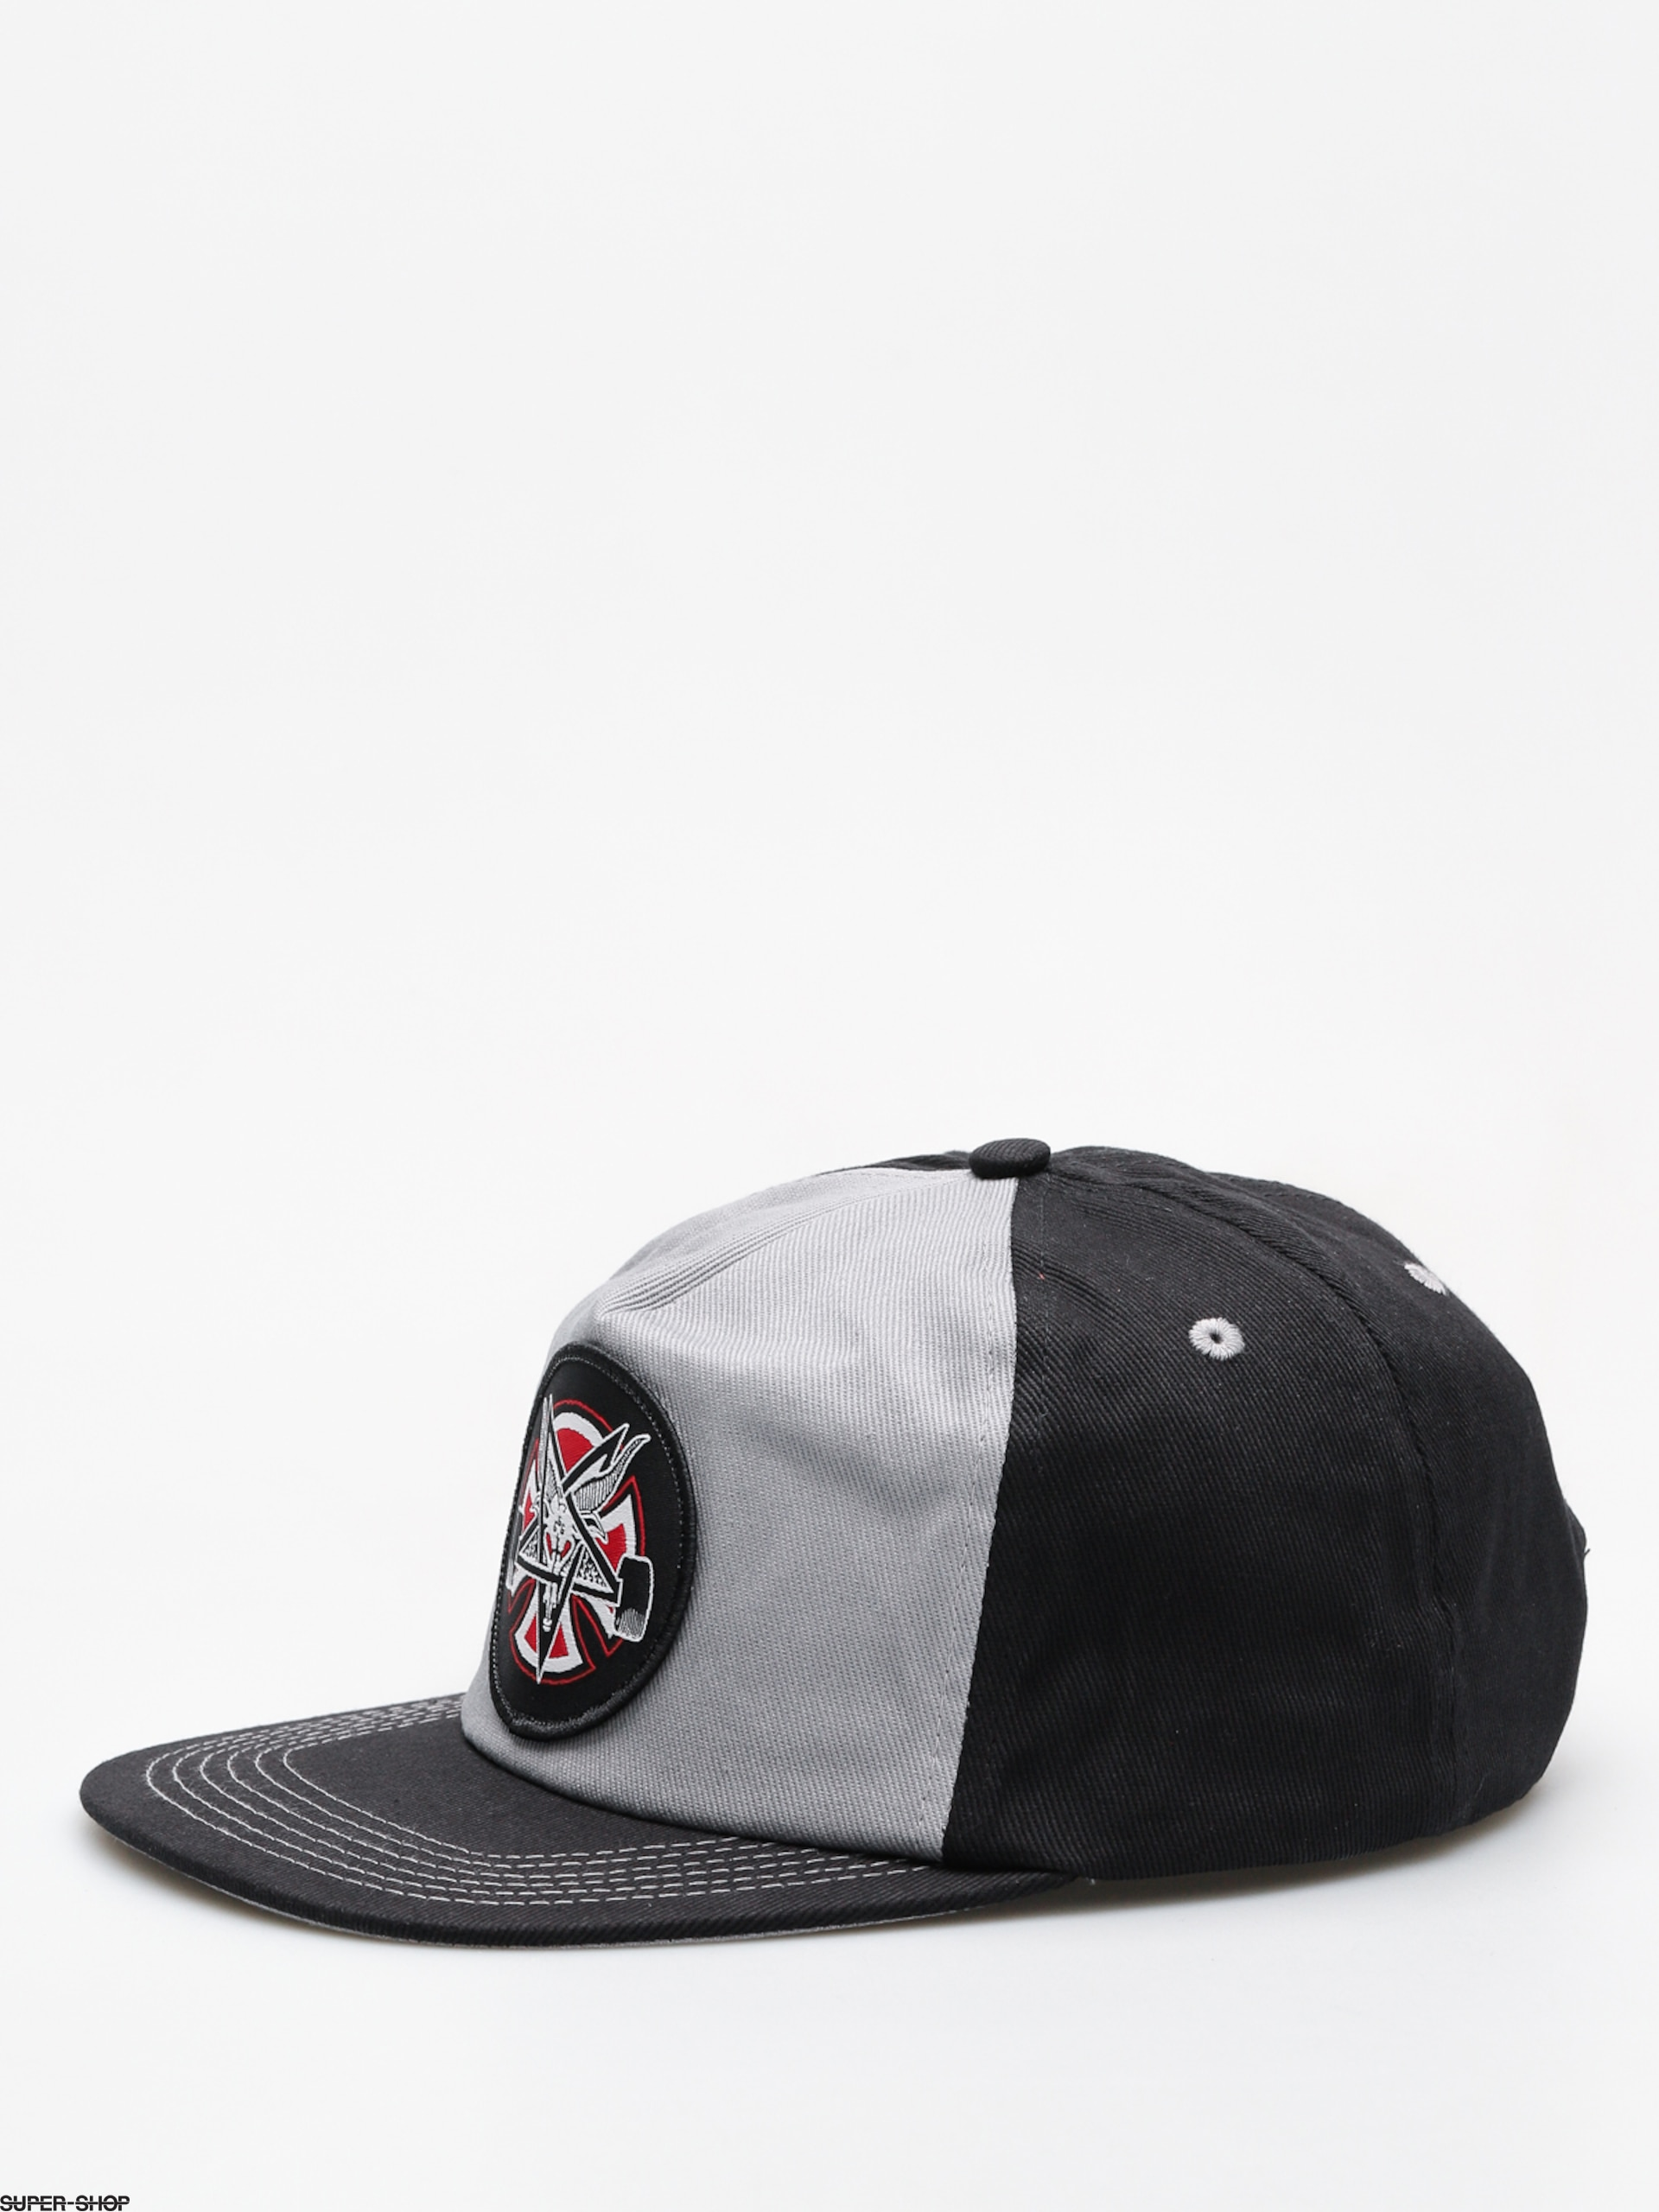 972360-w1920-independent-x-thrasher-cap-pentagram-cross-adj-snapback -zd-grey-black.jpg a38ba3a9460c